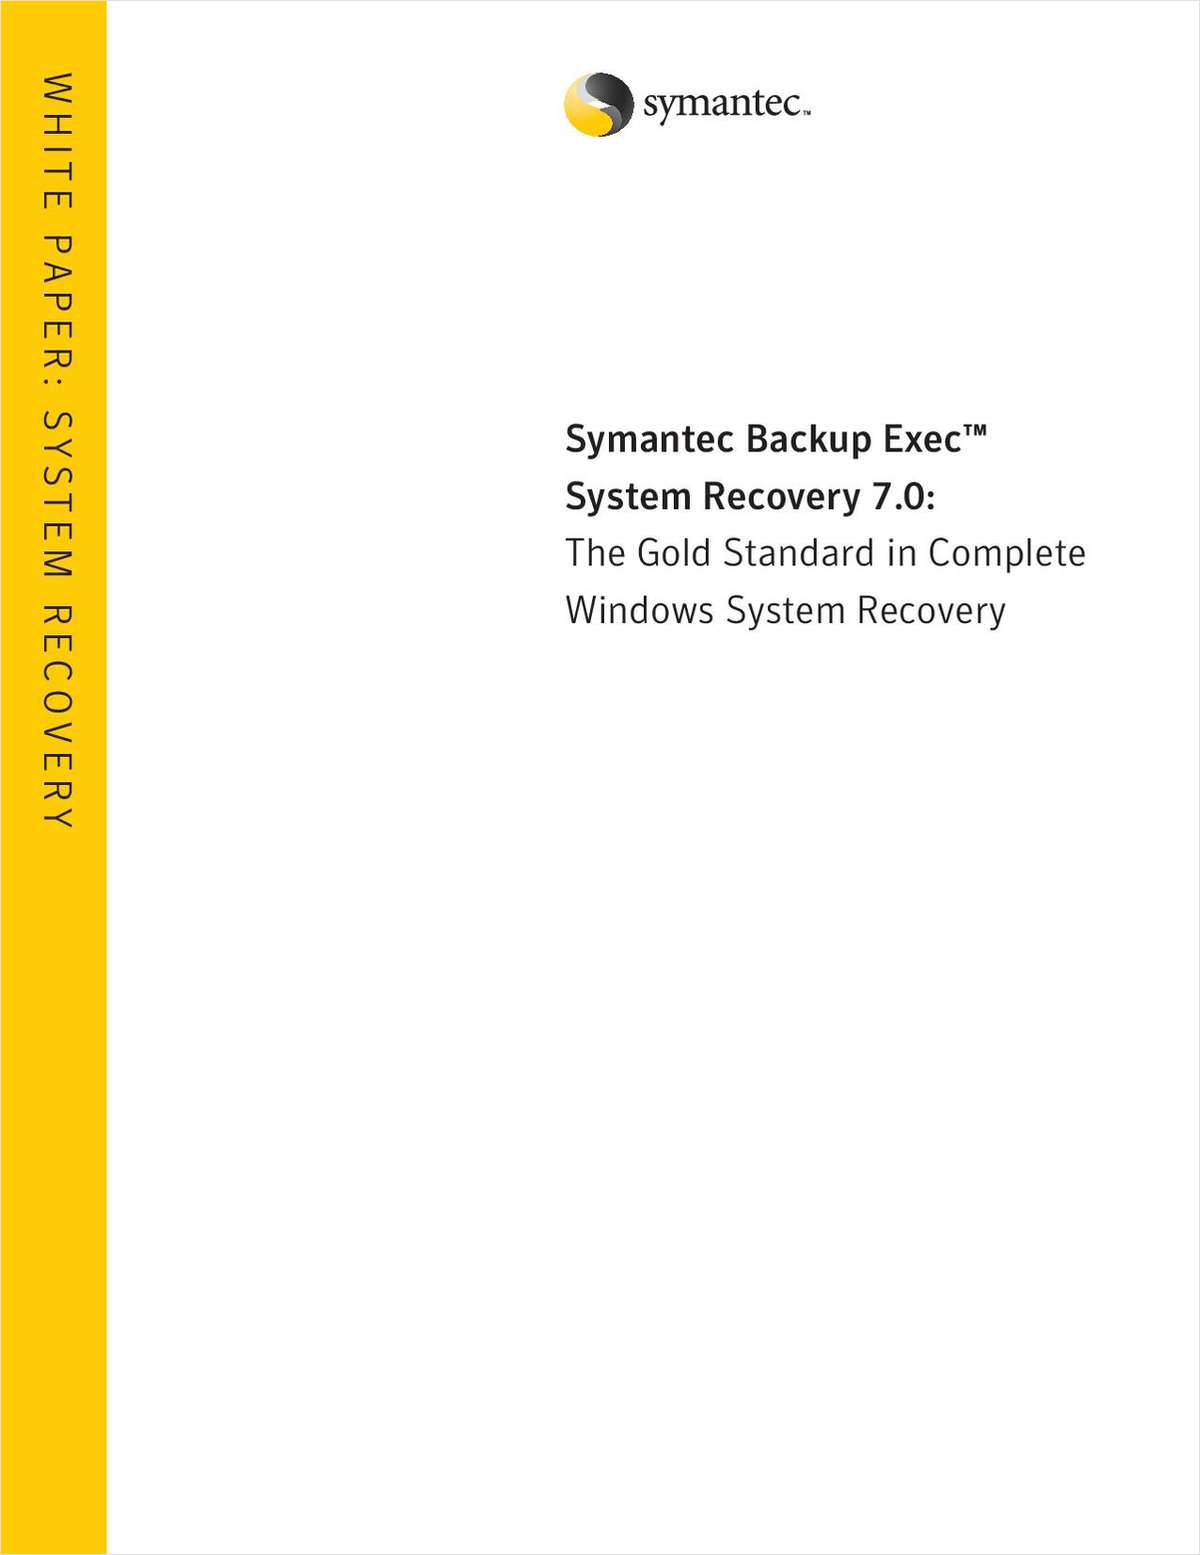 Symantec Backup Exec System Recovery 7.0: The Gold Standard in Complete Windows System Recovery